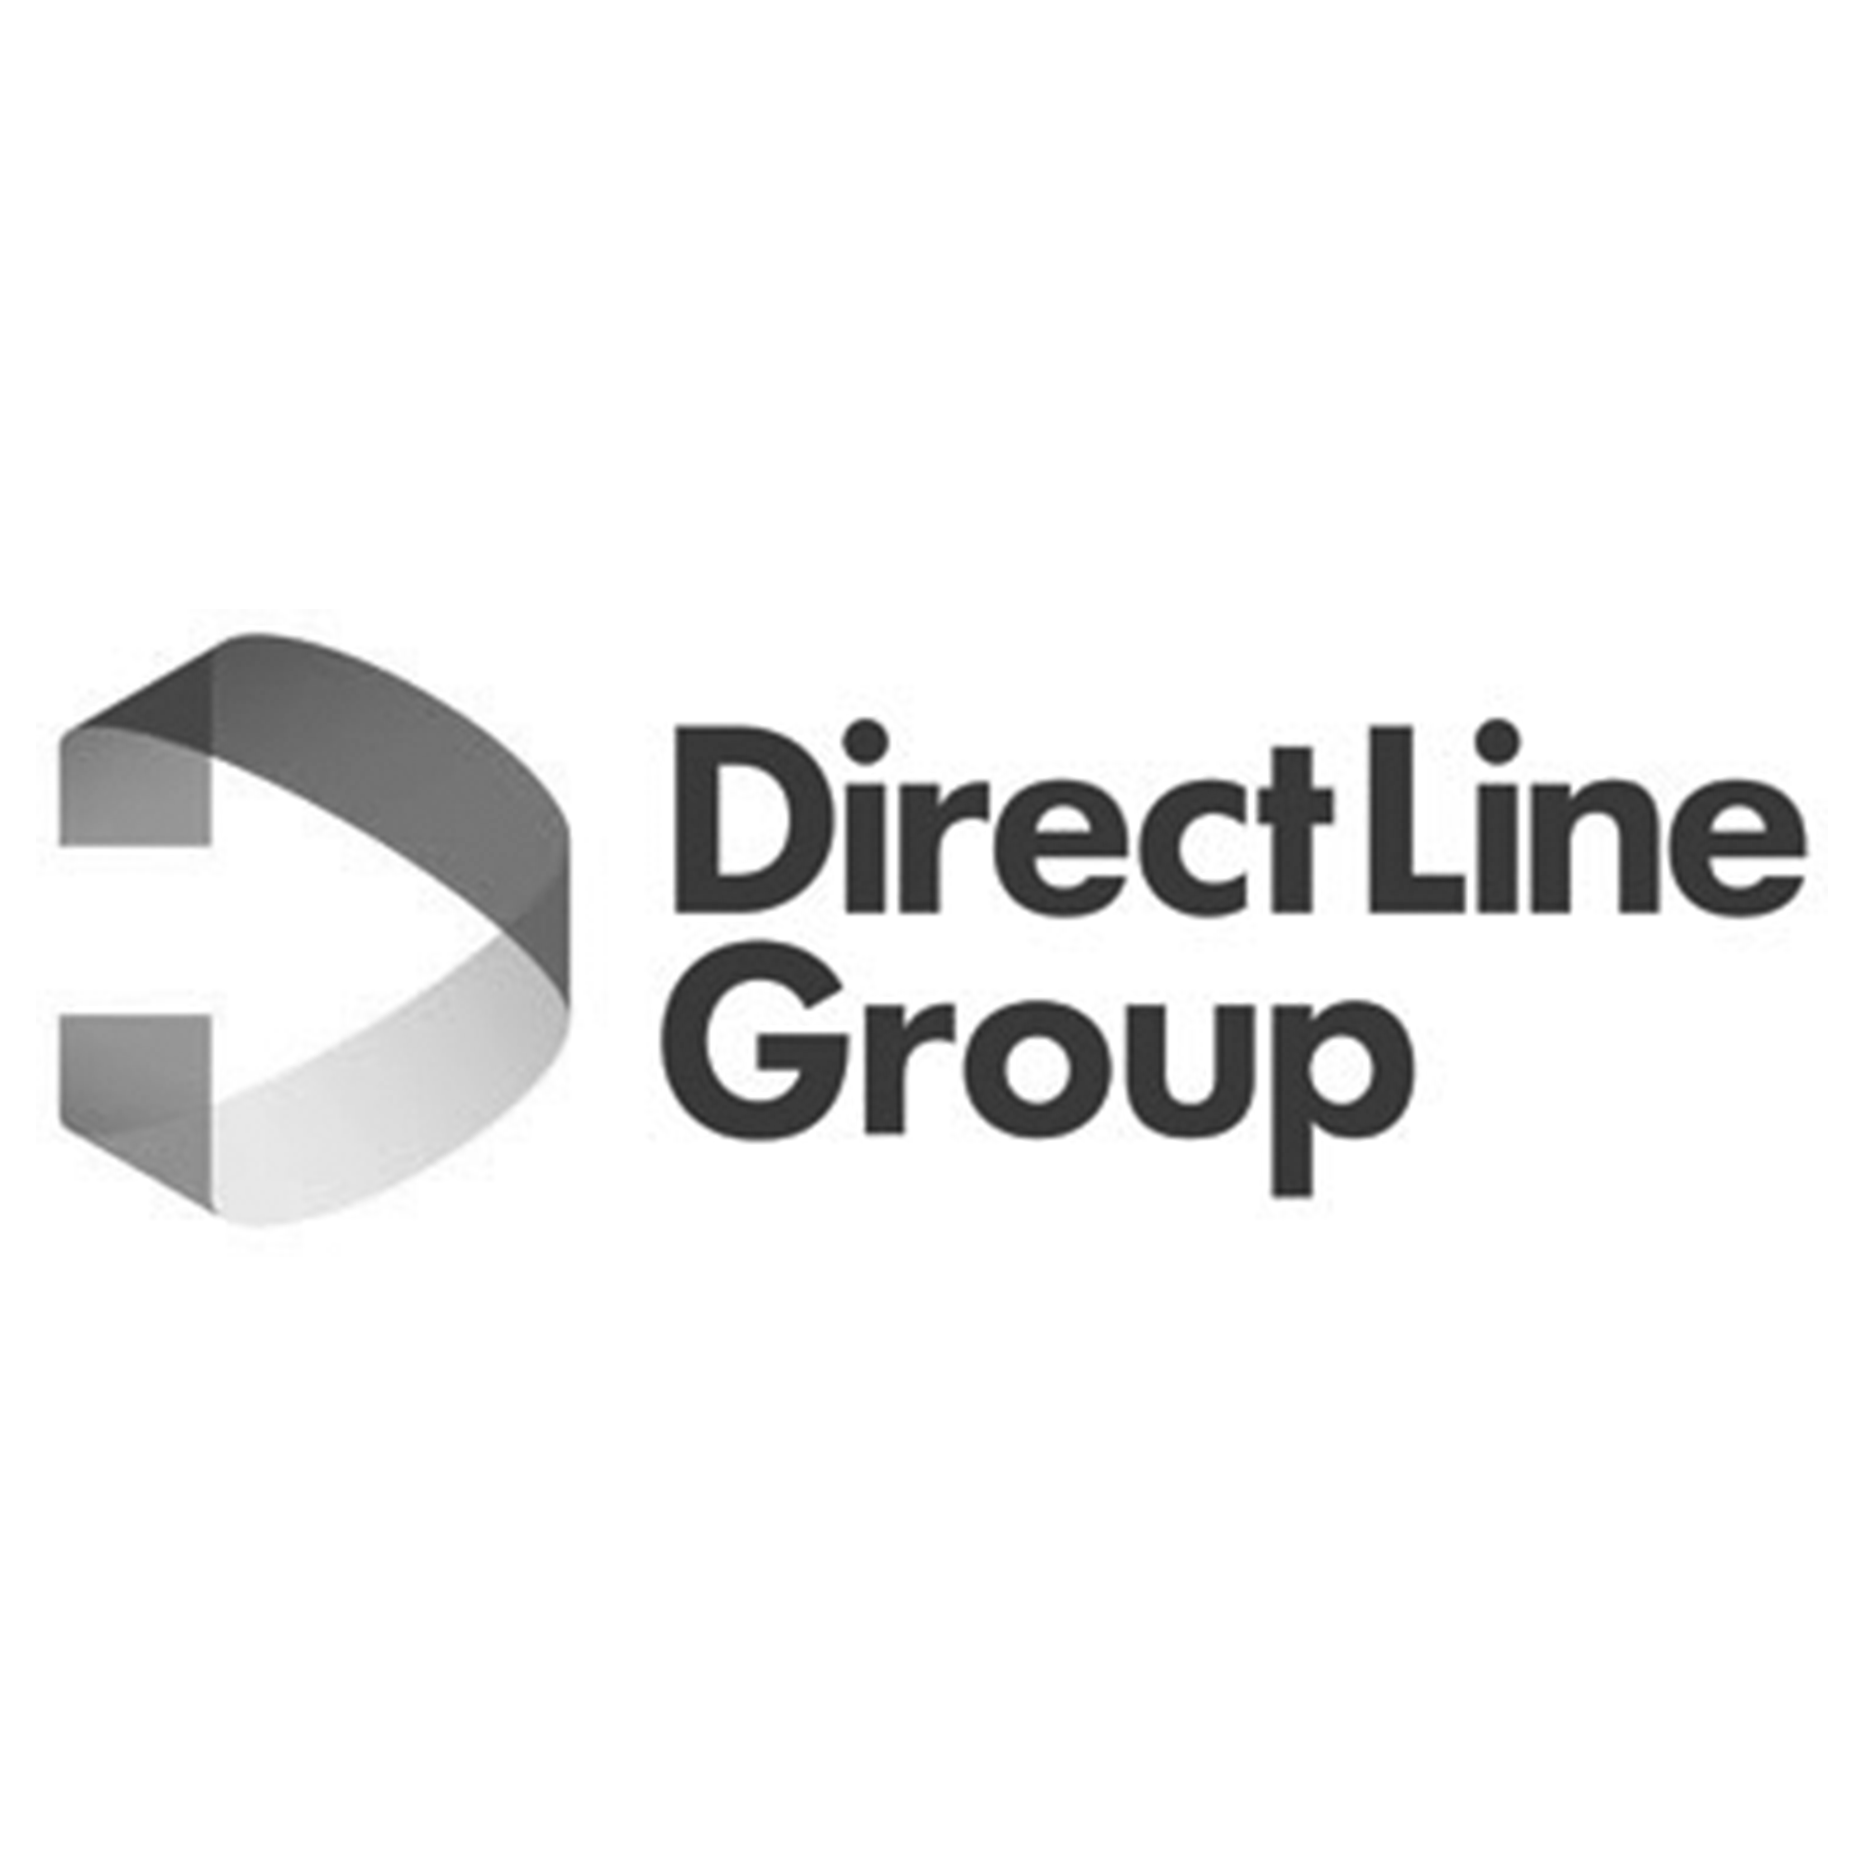 Direct Line Group - gs.png